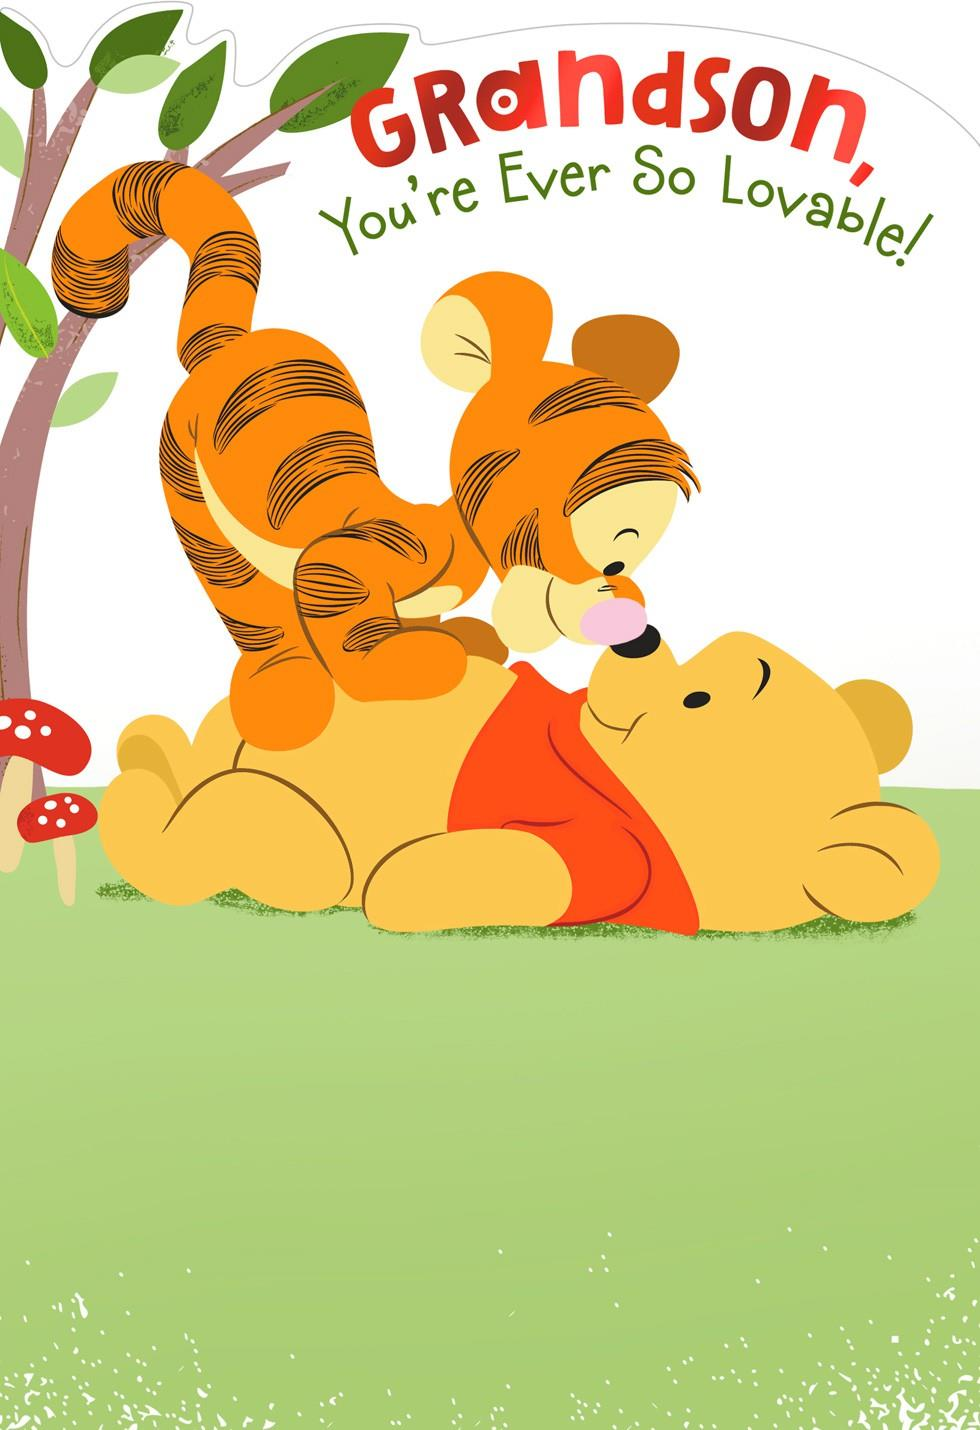 Winnie the pooh birthday card for grandson greeting cards hallmark winnie the pooh birthday card for grandson m4hsunfo